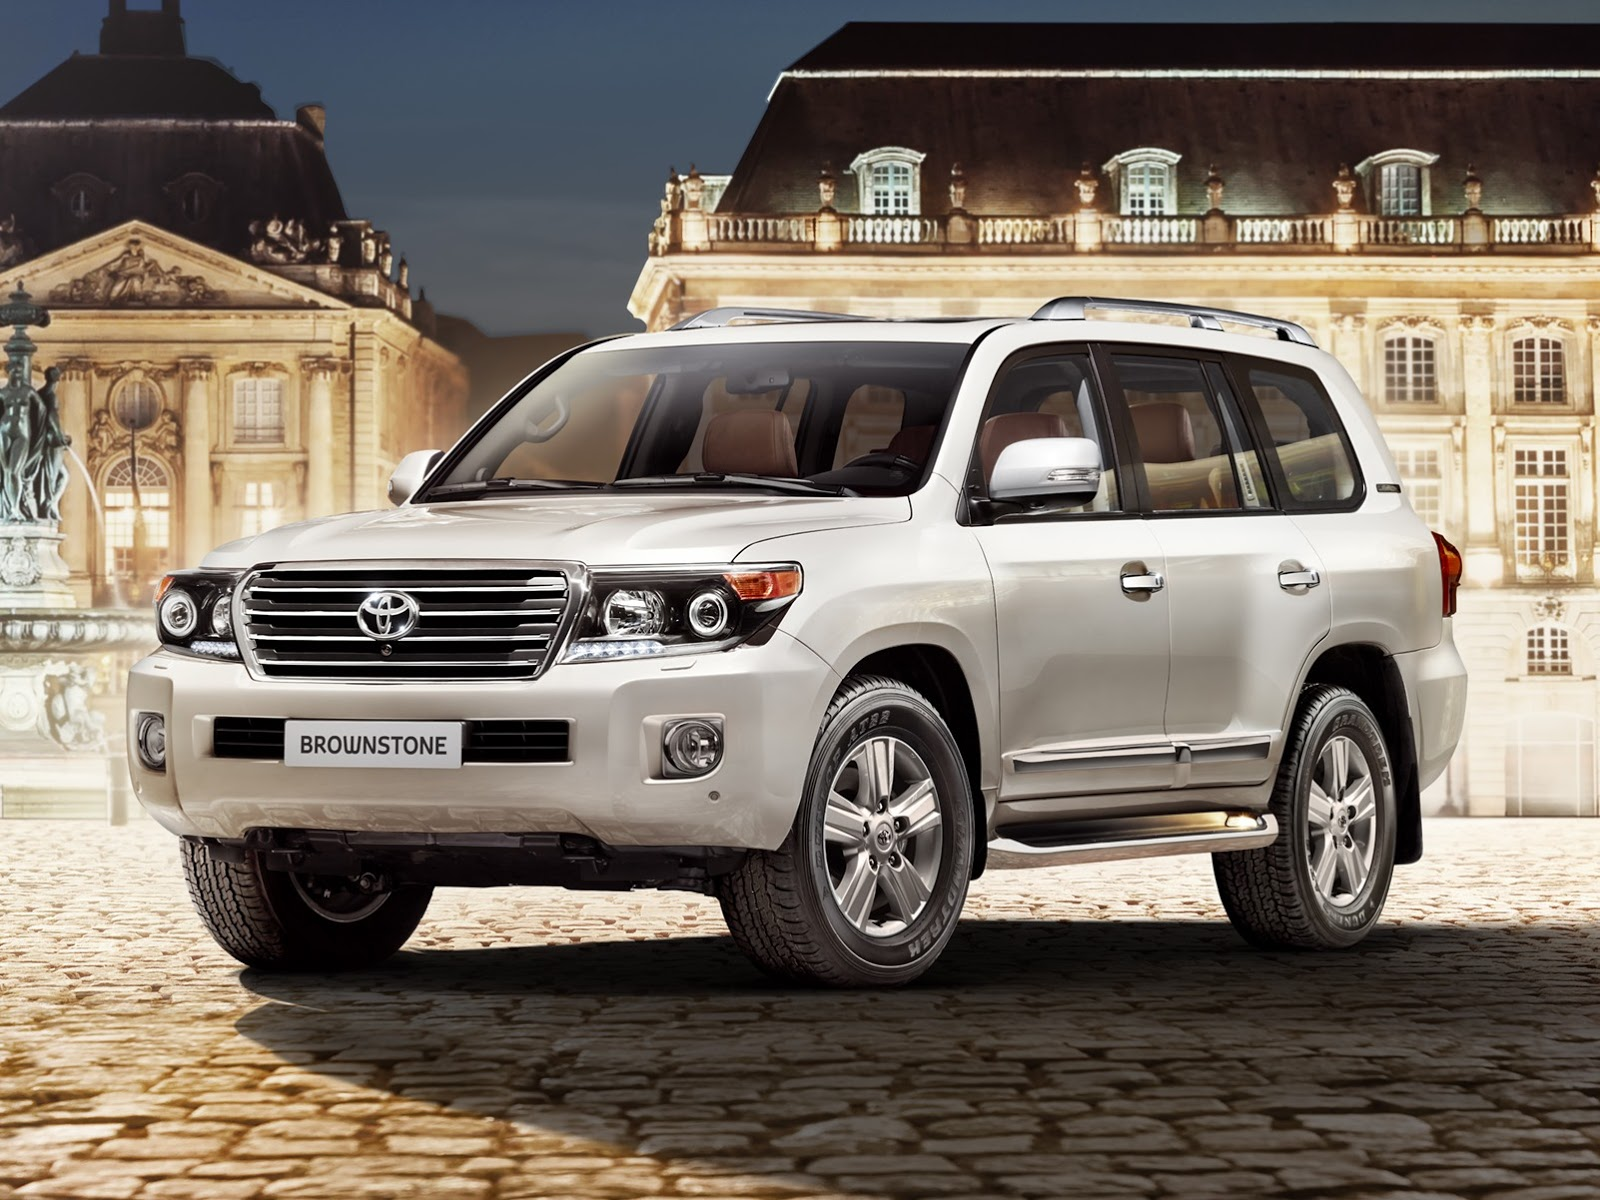 russia gets exclusive toyota land cruiser 200 brownstone edition